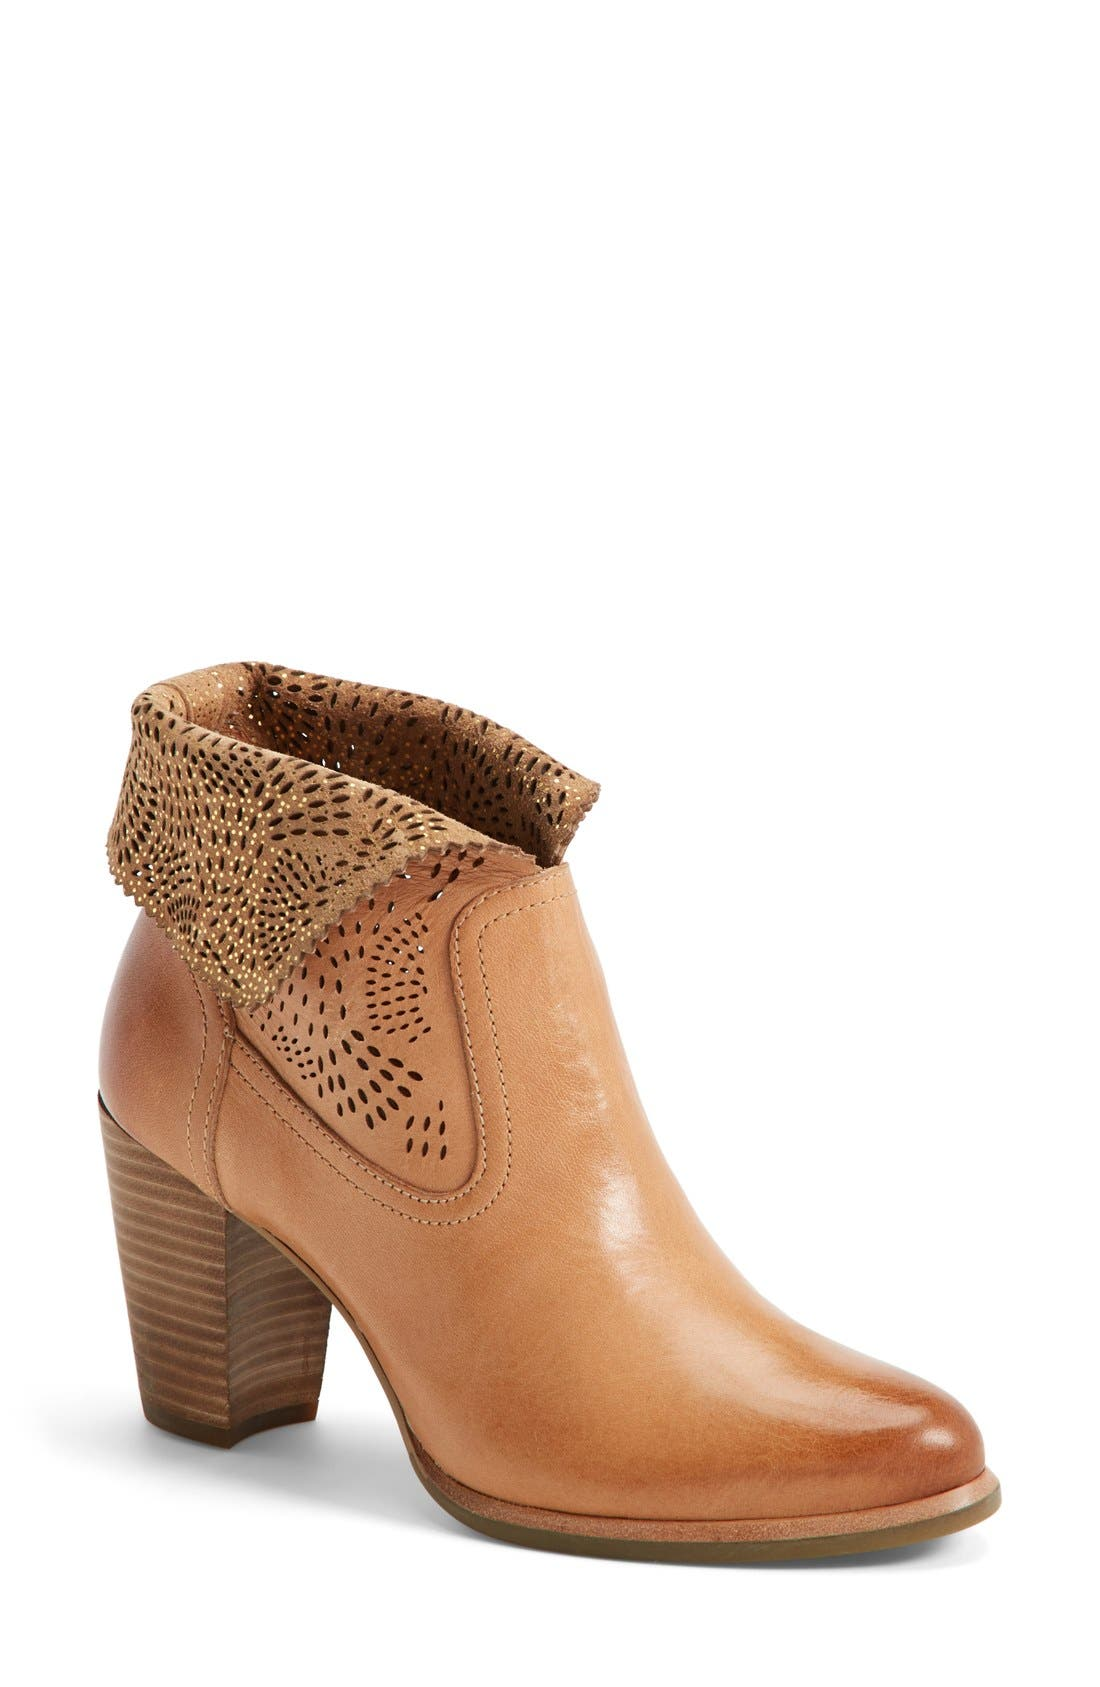 Main Image - UGG® Australia 'Thames Seaweed' Perforated Bootie (Women)